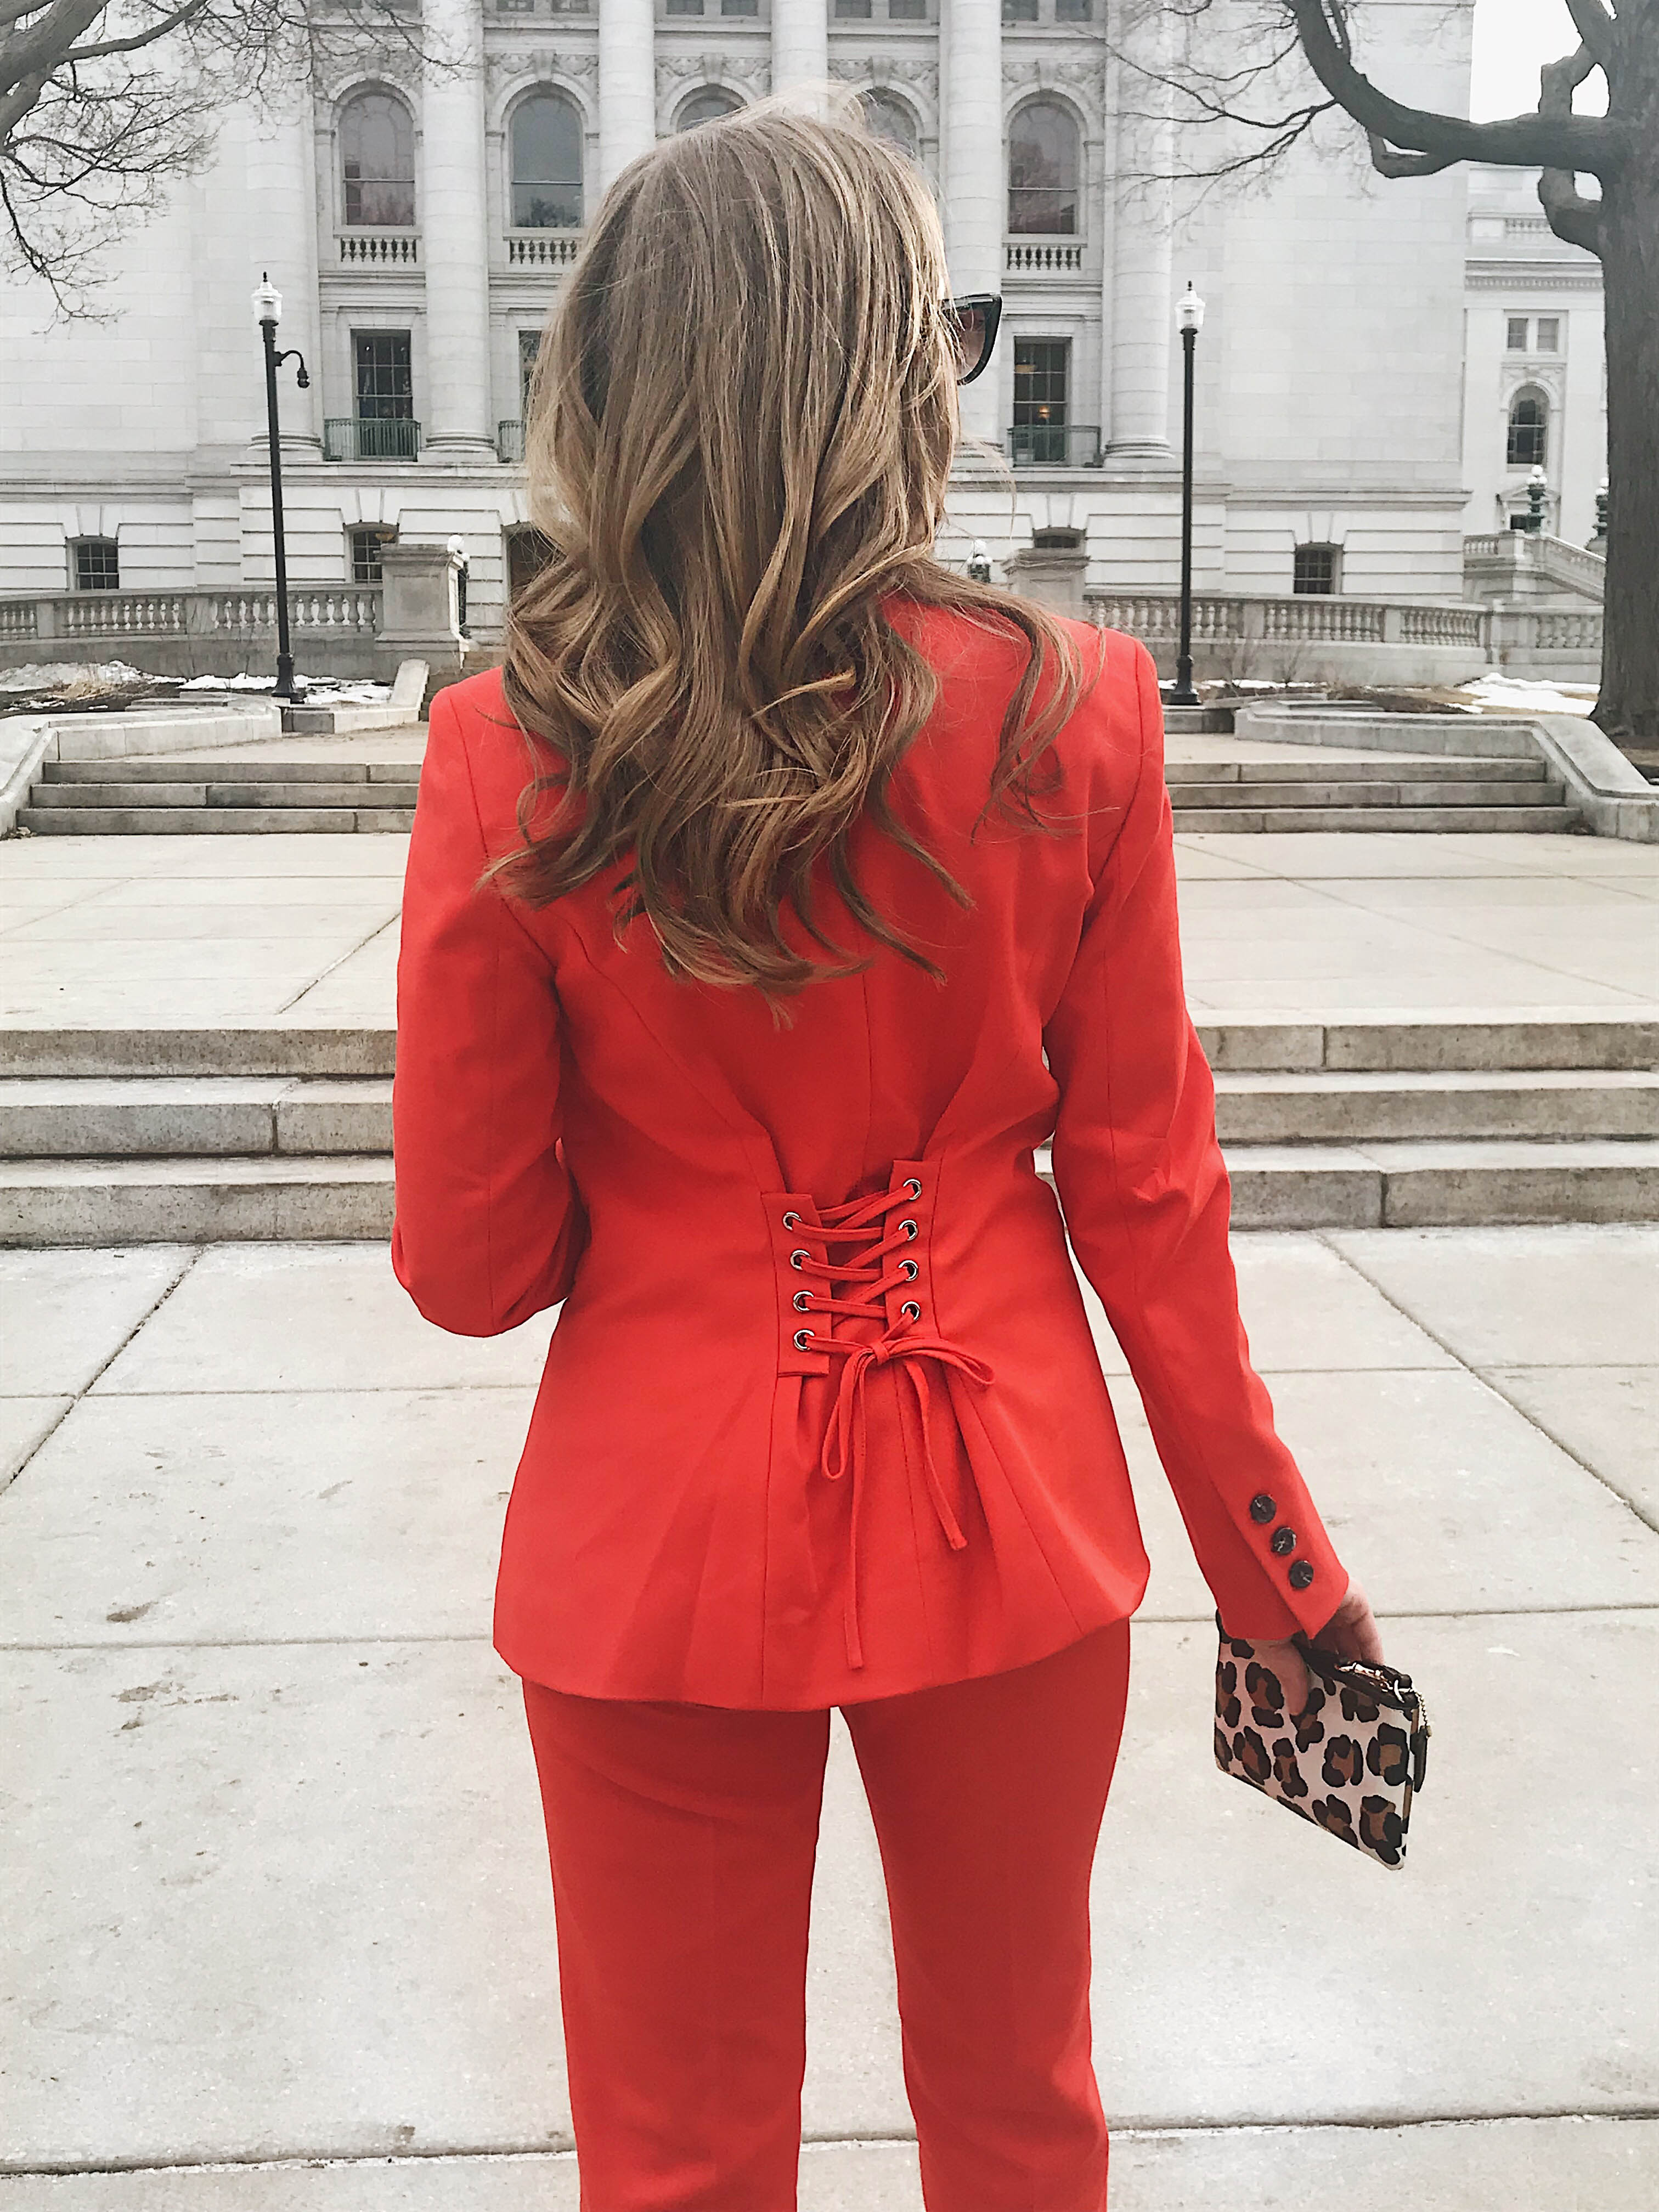 Red Power Suit for the UW Fashion Show